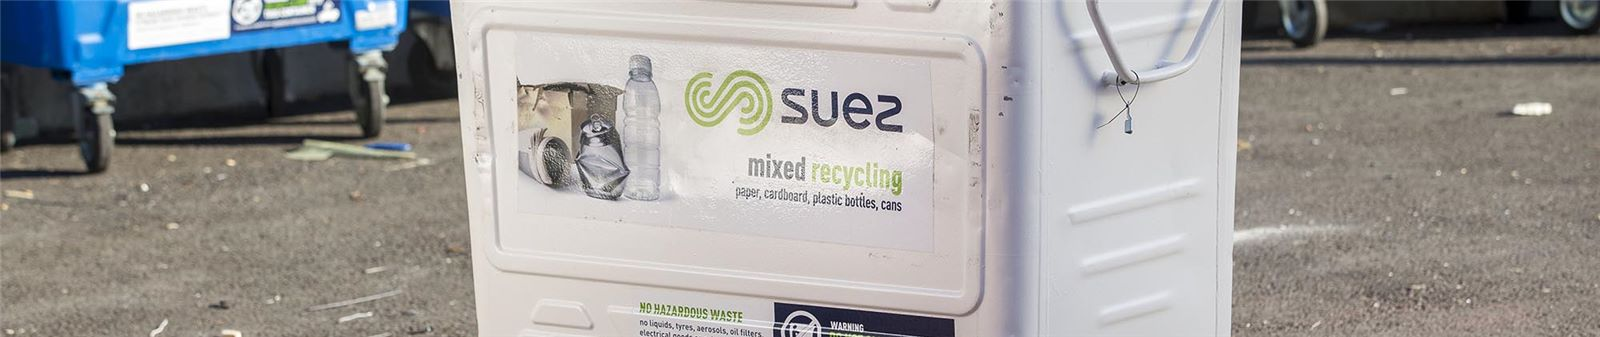 SUEZ RecyclingContainer Poole UK CW